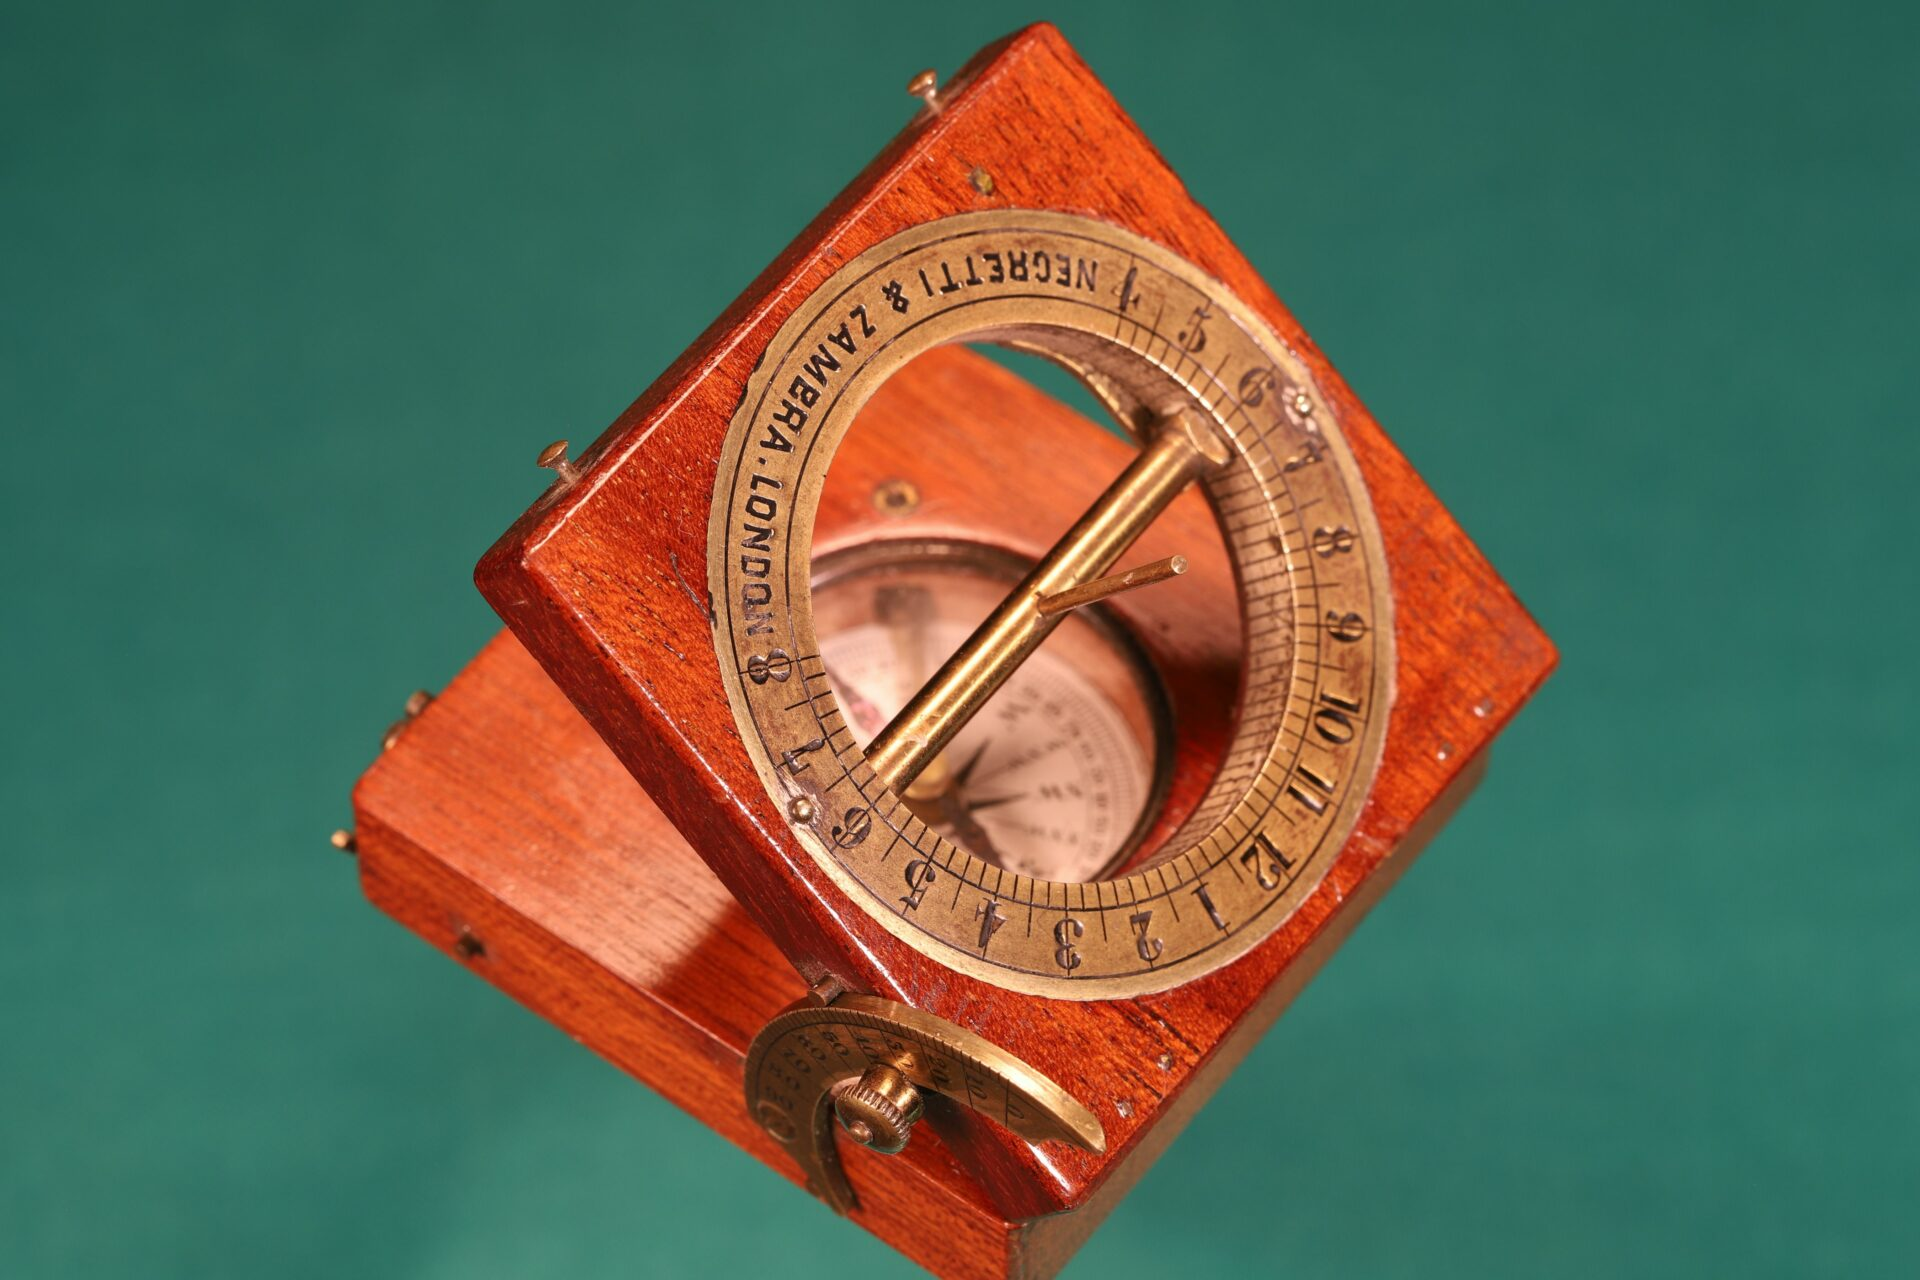 Image of open Francis Barker Equinoctial Compass Retailed by Negretti & Zambra c1870 with gnomon raised taken from above